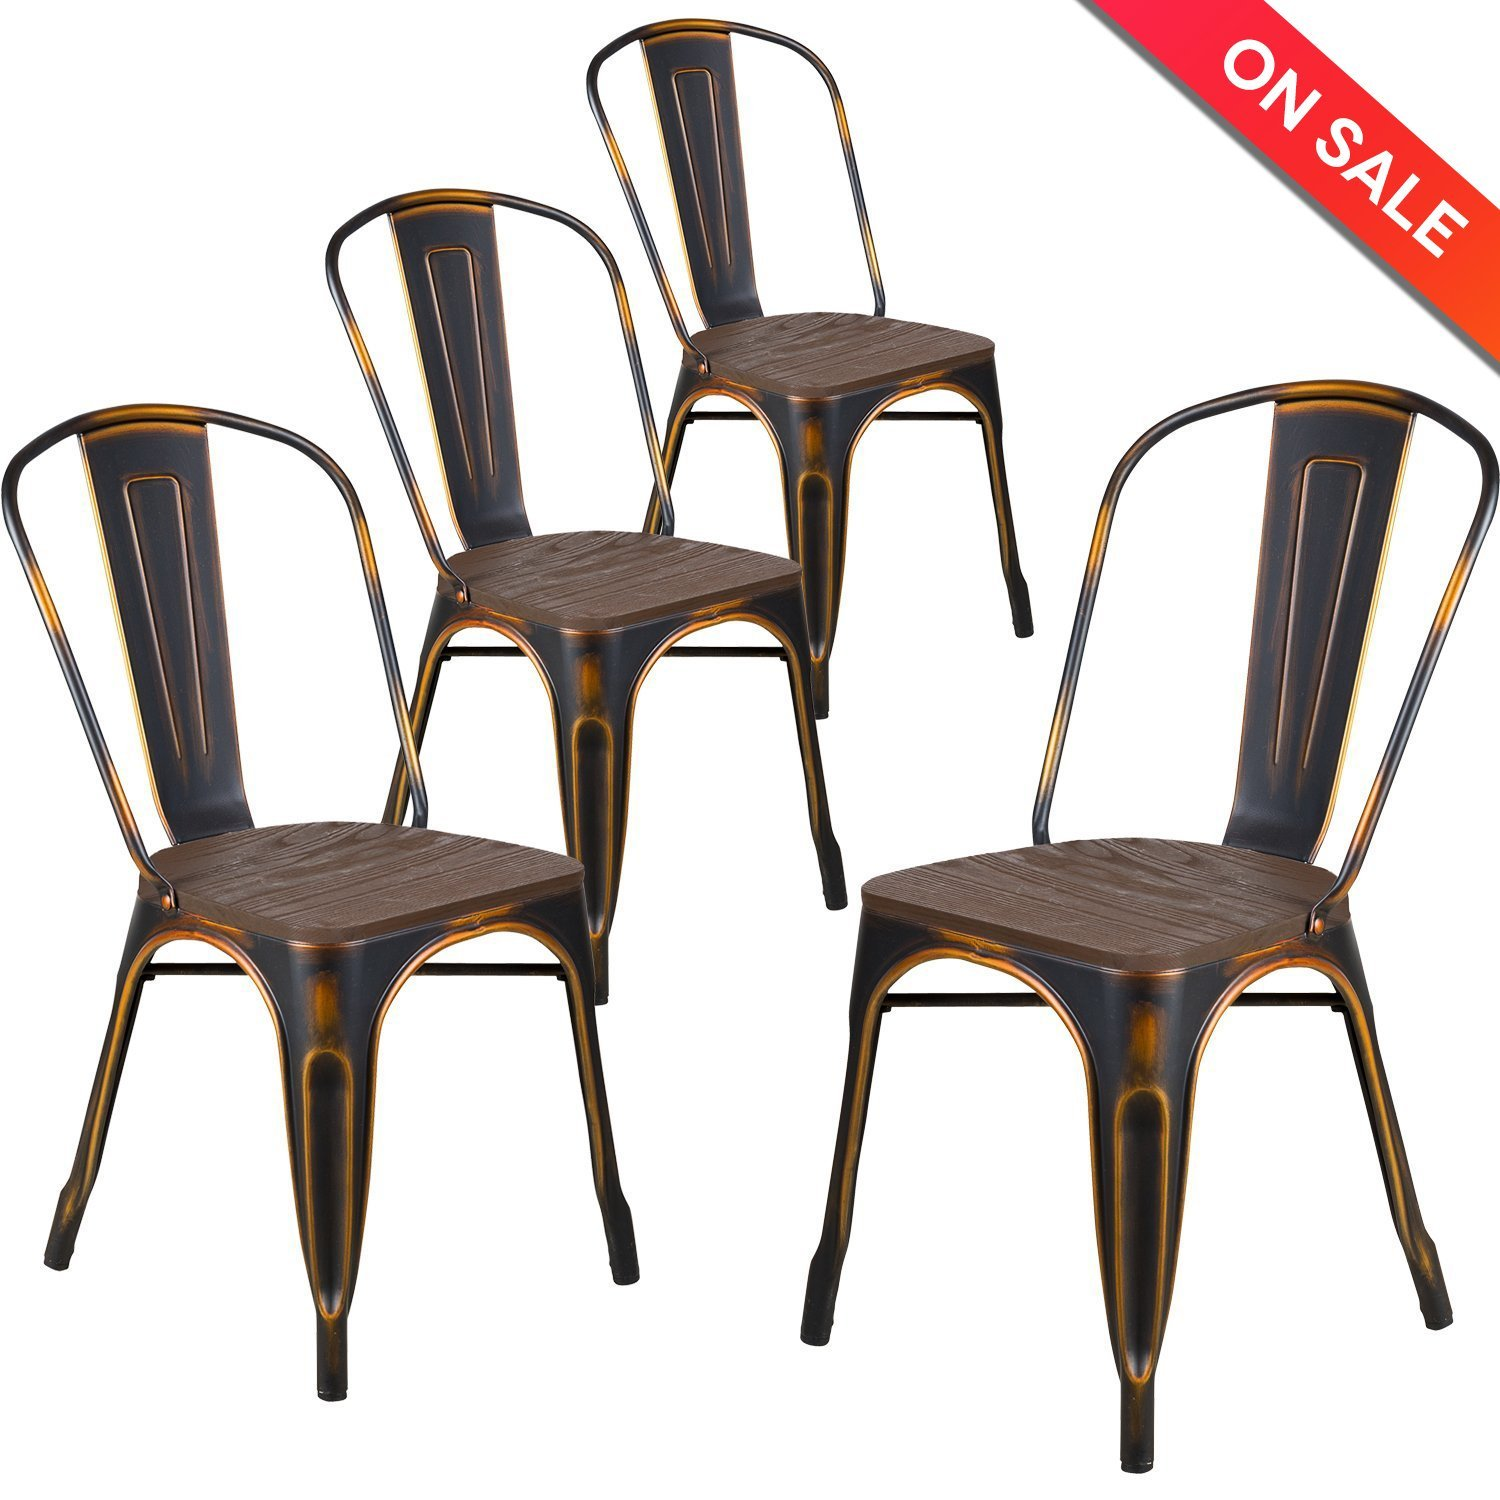 LCH Industrial Metal Wood Top Stackable Dining Chairs, Set Of 4 Vintage  Indoor/Outdoor